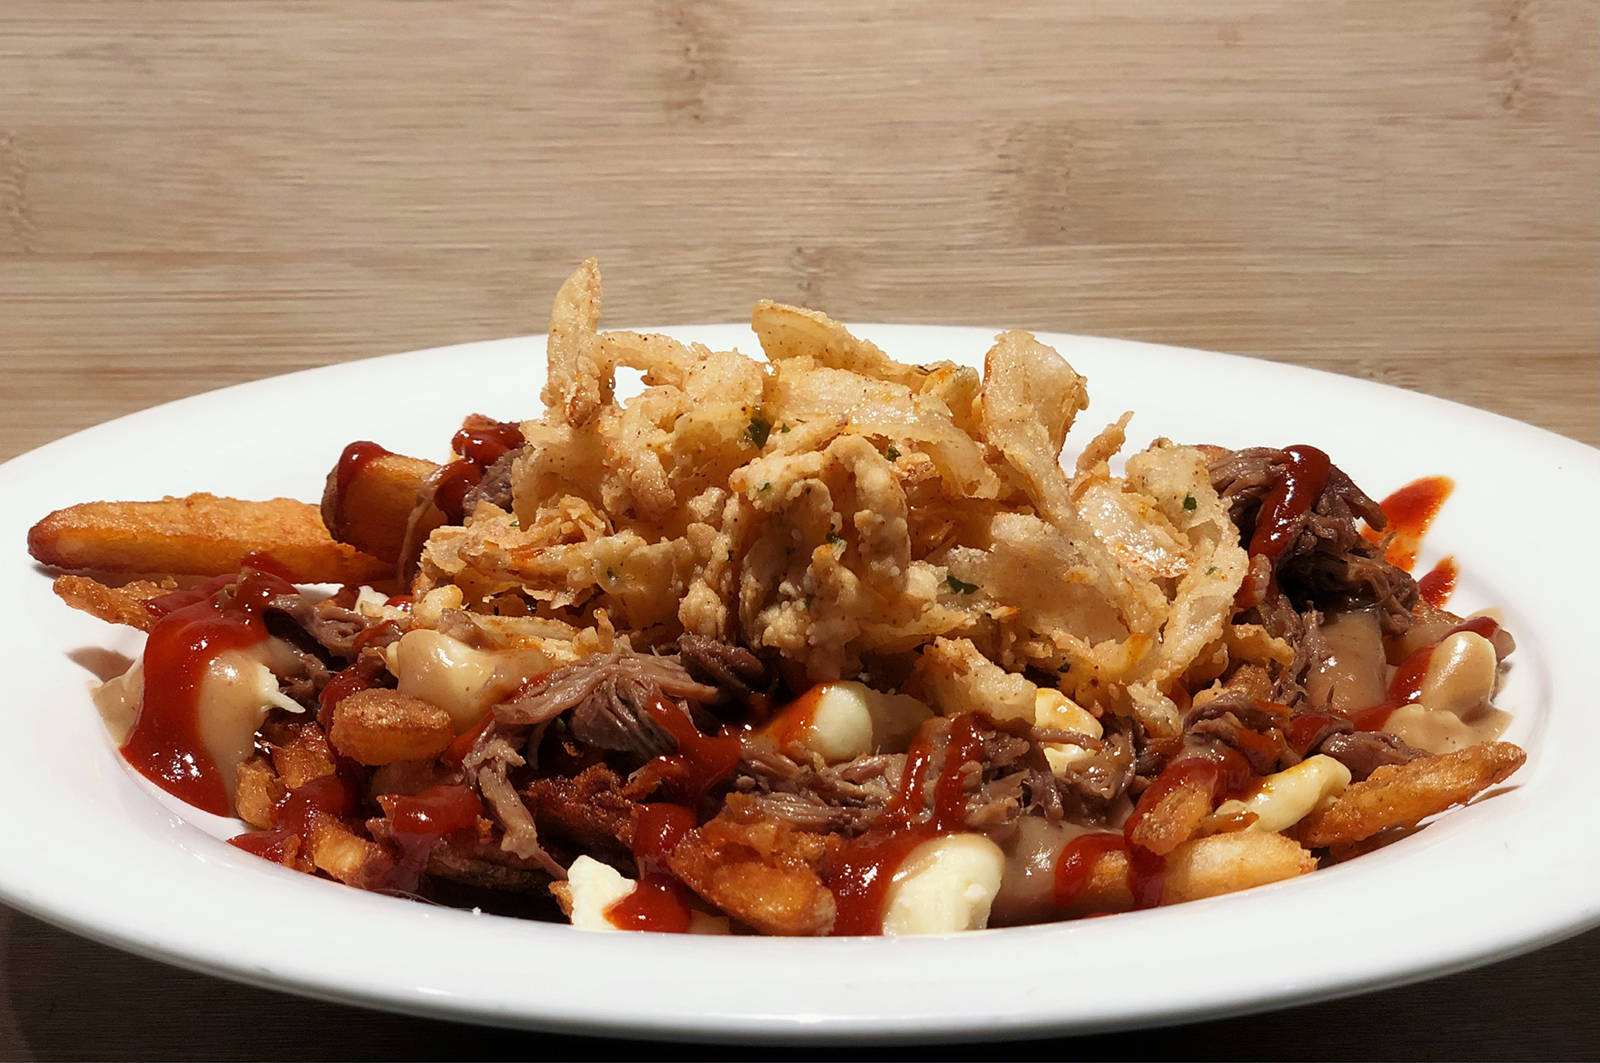 Darcy's Pub Westshore offers its BBQ Brisket Poutine – crispy beer battered fries, real cheese curds, house-made brisket gravy, and 12-hour braised shredded beef brisket, topped with a spicy barbecue drizzle and fried buttermilk onions.